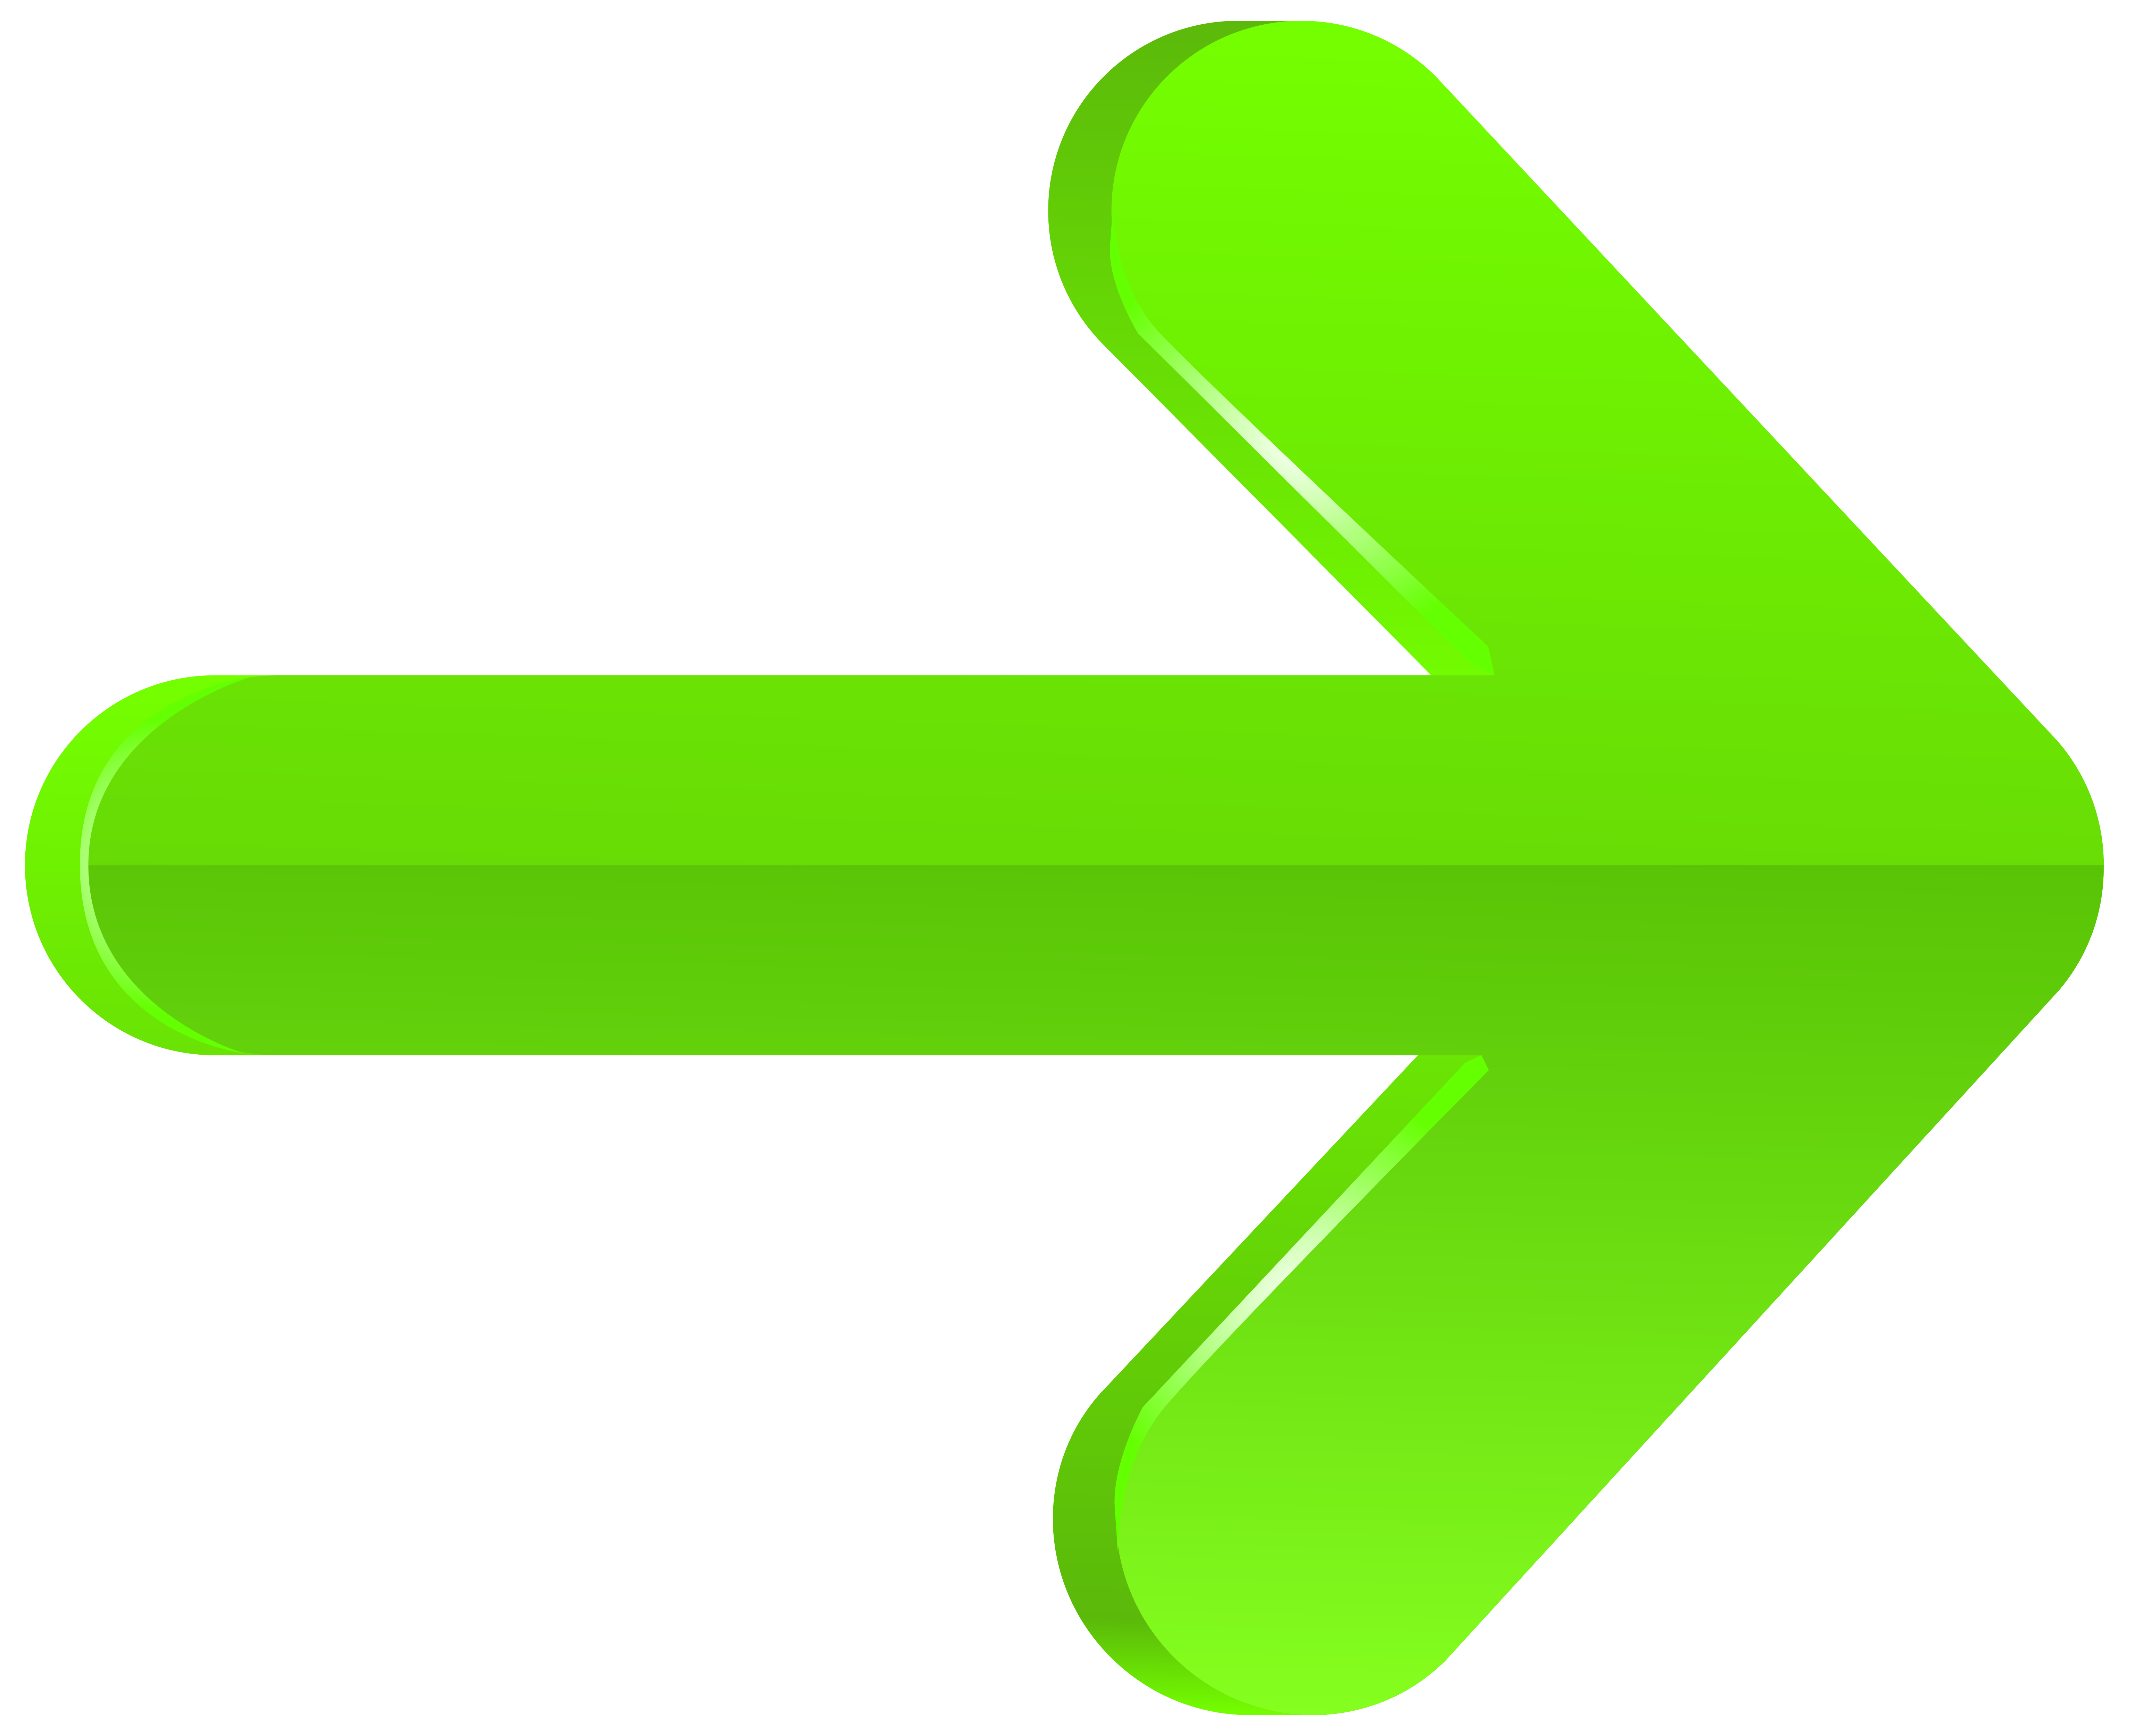 Arrow Right Green PNG Transparent Clip Art Image.